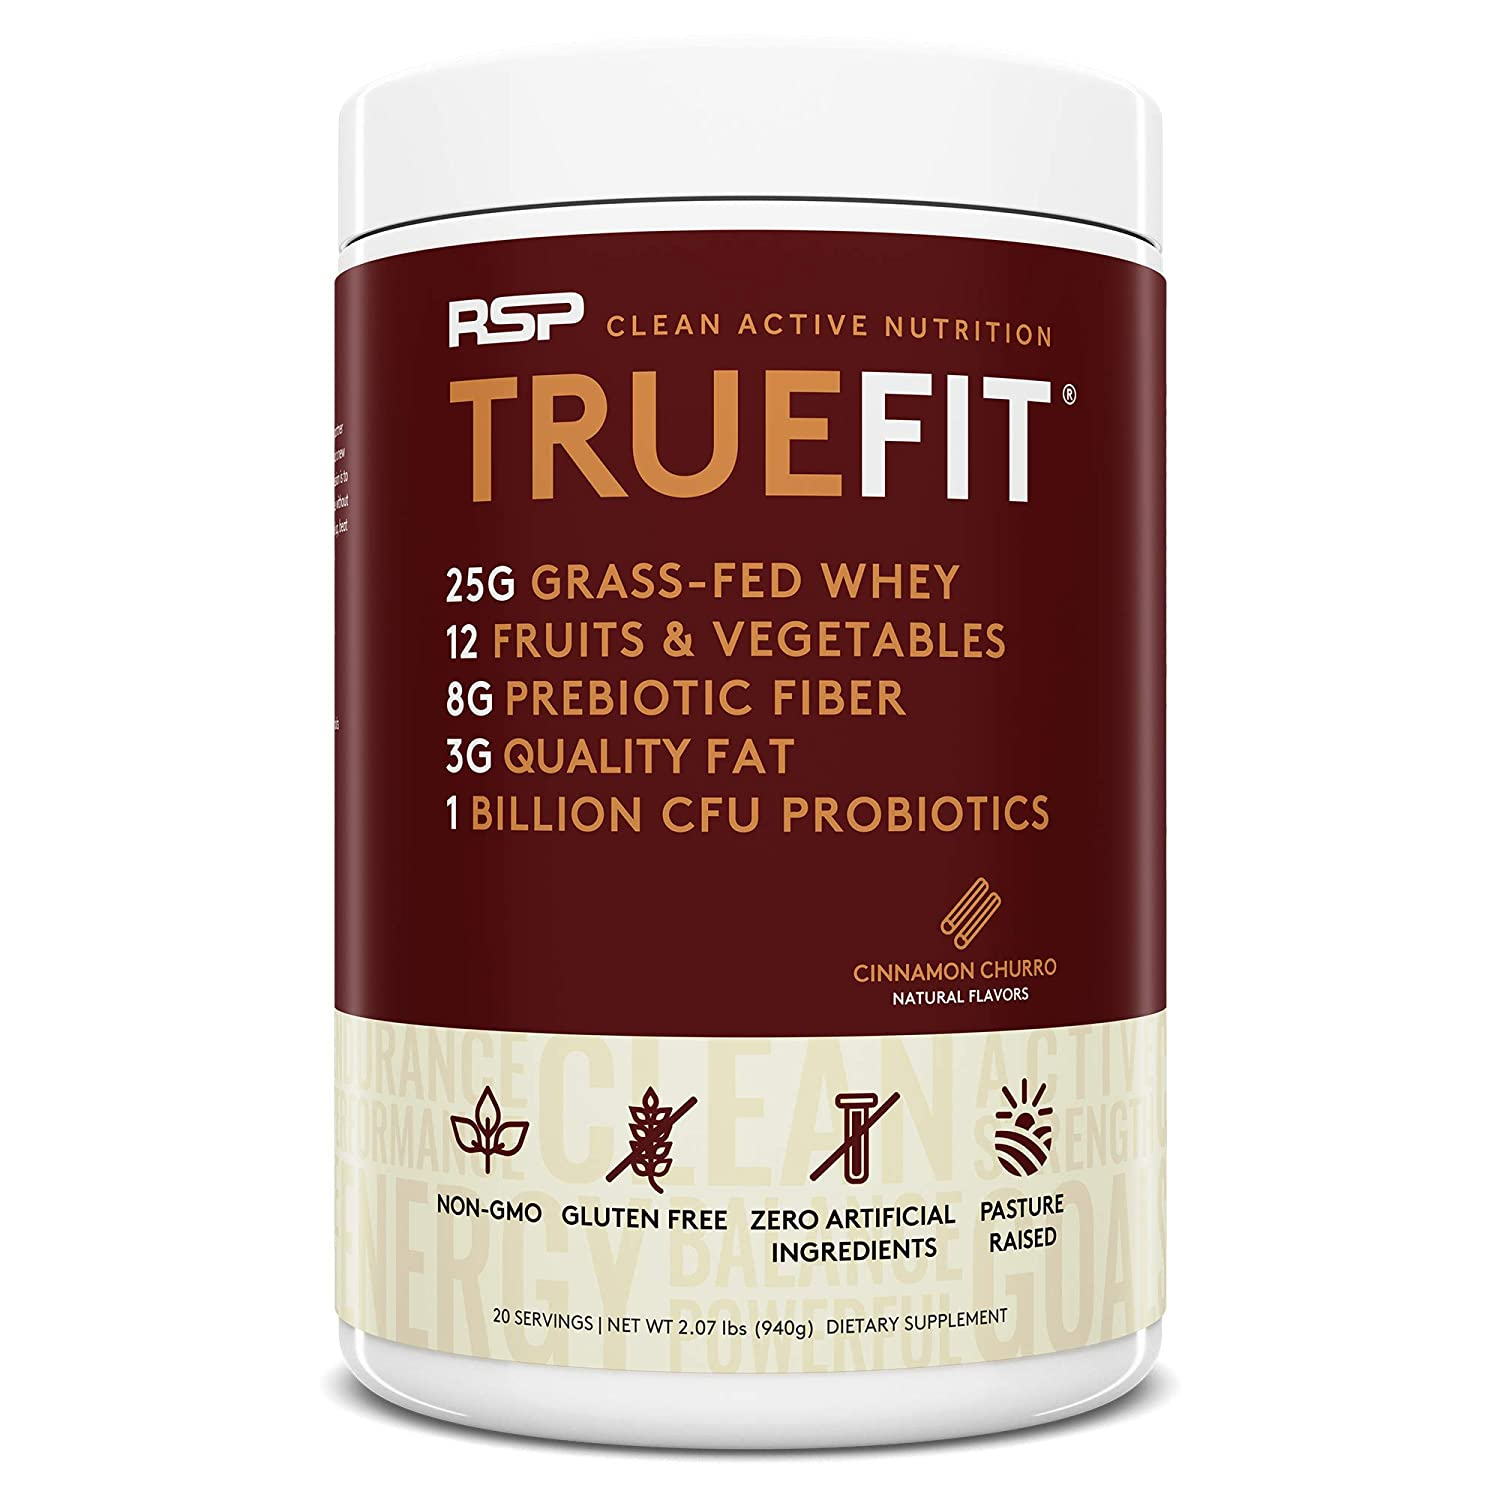 RSP TrueFit – Grass Fed Lean Meal Replacement Protein Shake, All Natural Whey Protein Powder with Fiber Probiotics, Non-GMO, Gluten-Free No Artificial Sweeteners, 2LB Churro Packaging May Vary